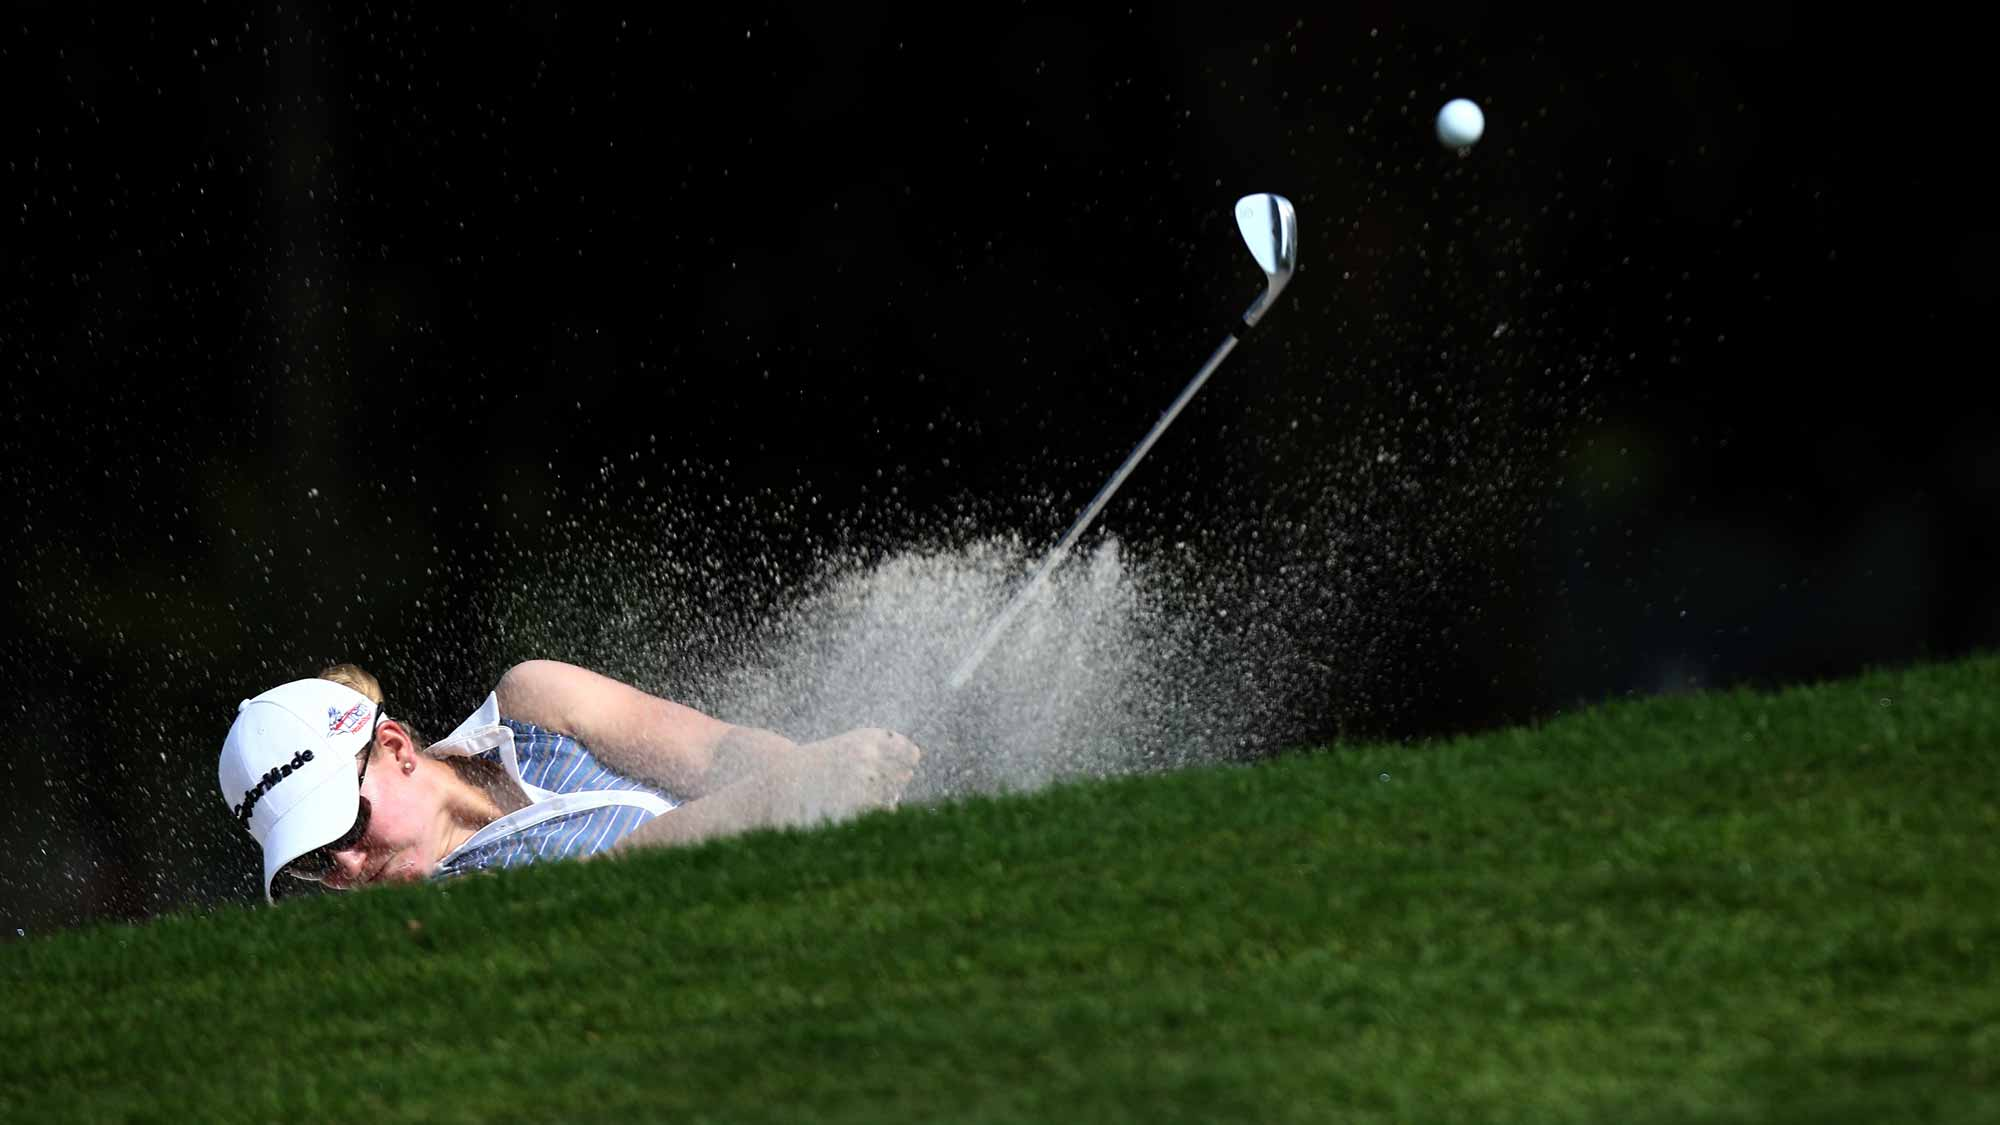 Austin Ernst of USA plays her bunker shot on the 6th hole during round one of the Sime Darby LPGA Tour at Kuala Lumpur Golf & Country Club